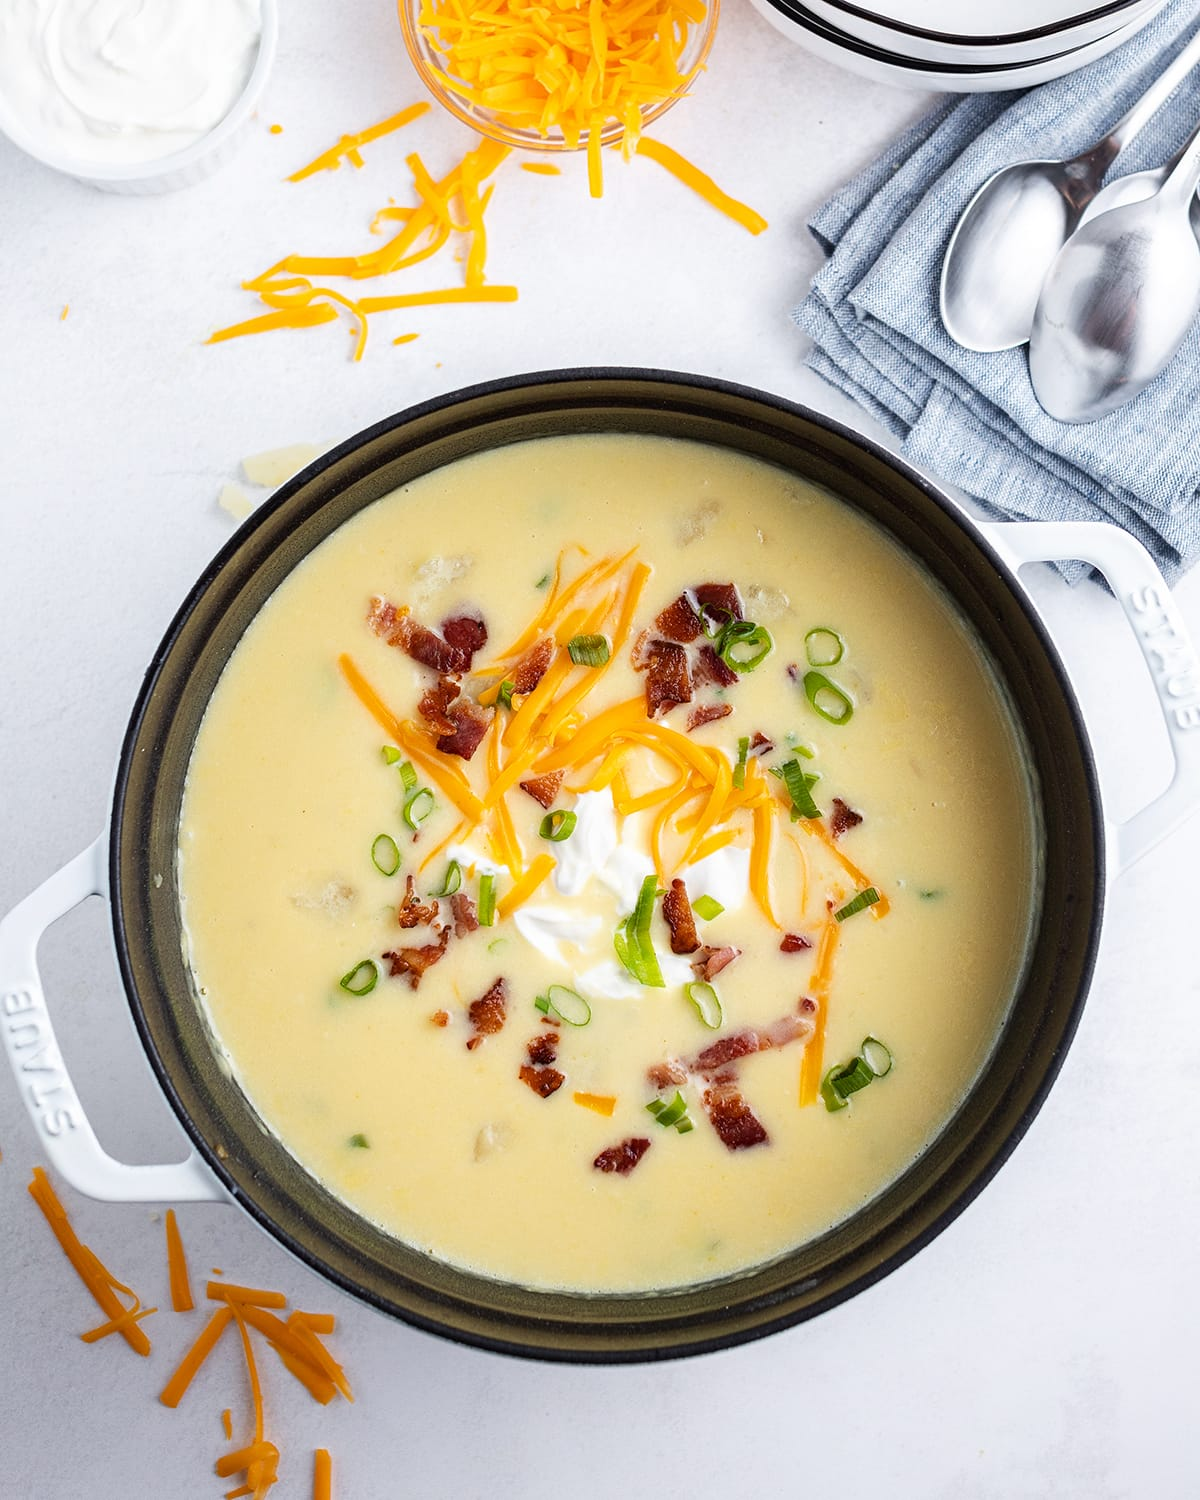 A pot of baked potato soup topped with sour cream, shredded cheese, crumbled bacon, and green onion.